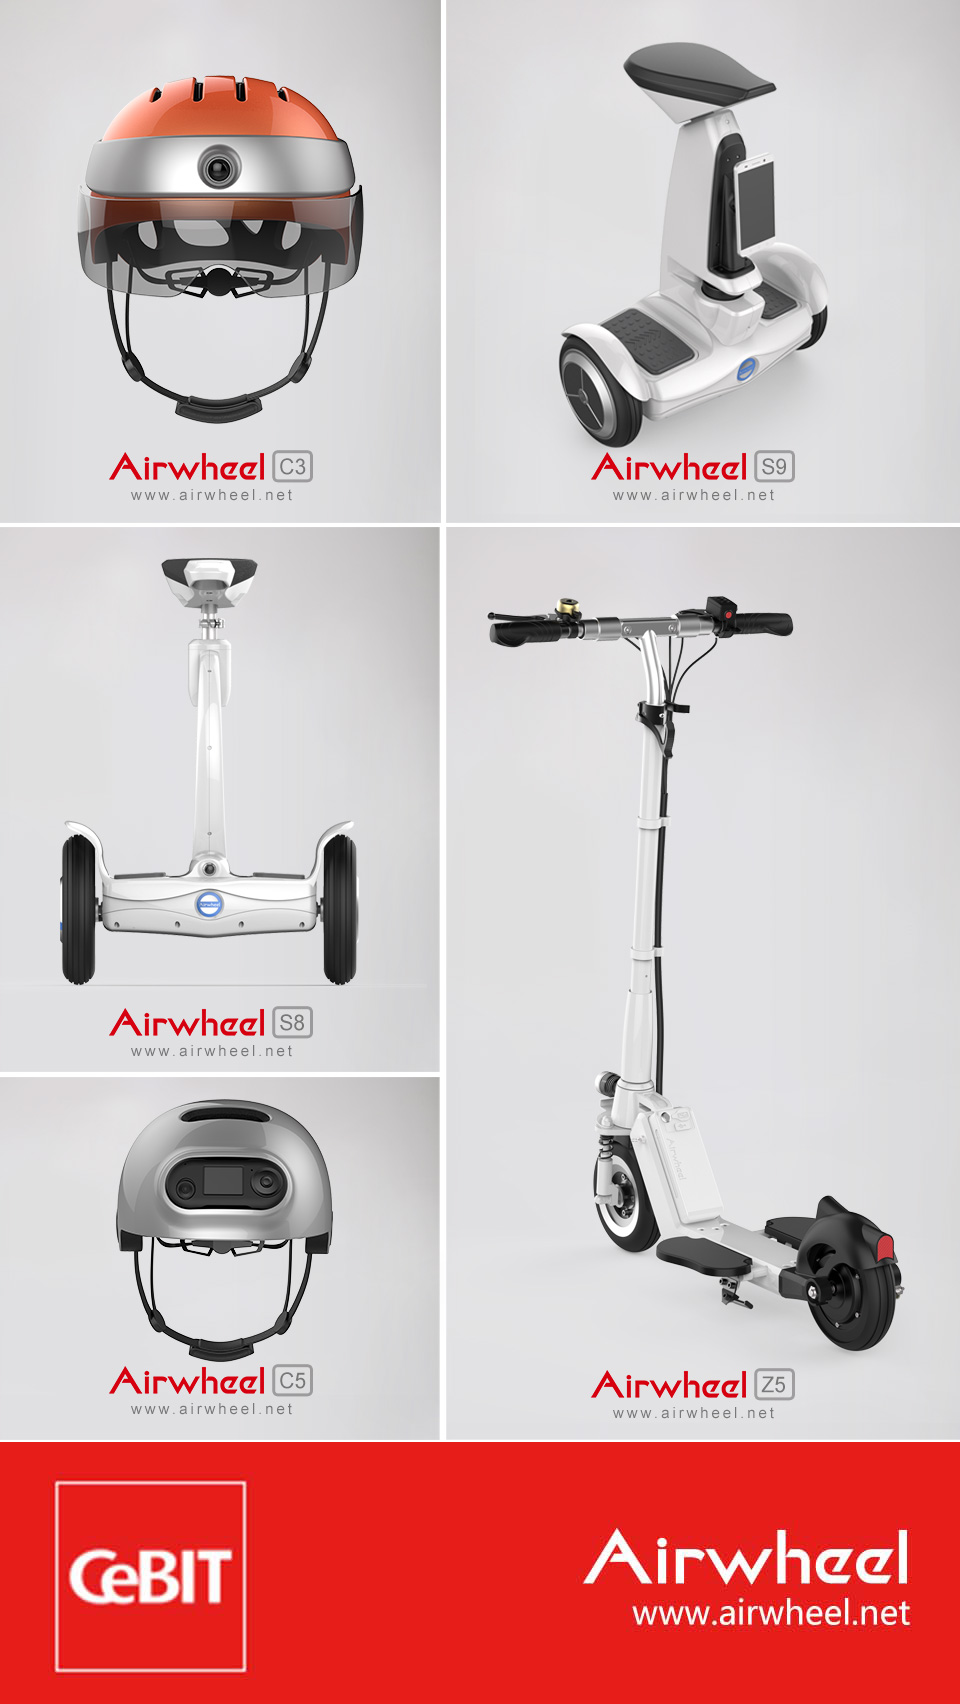 six self-balancing electric scooters